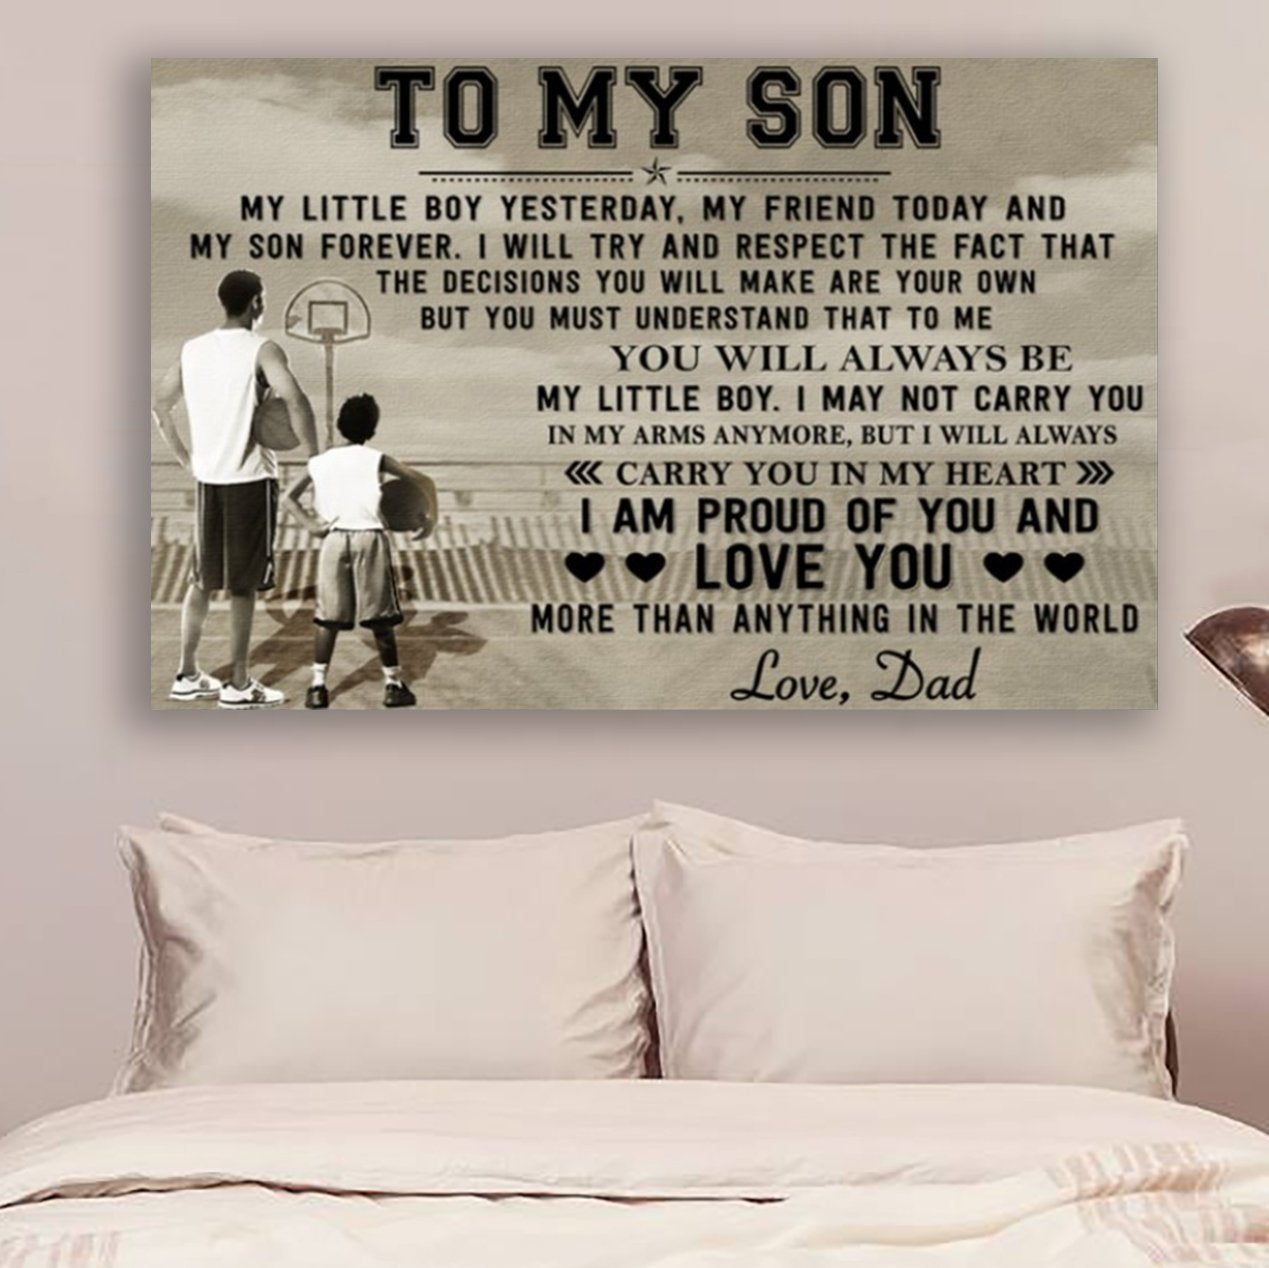 (cv394) Basketball Poster - To my Son my little boy